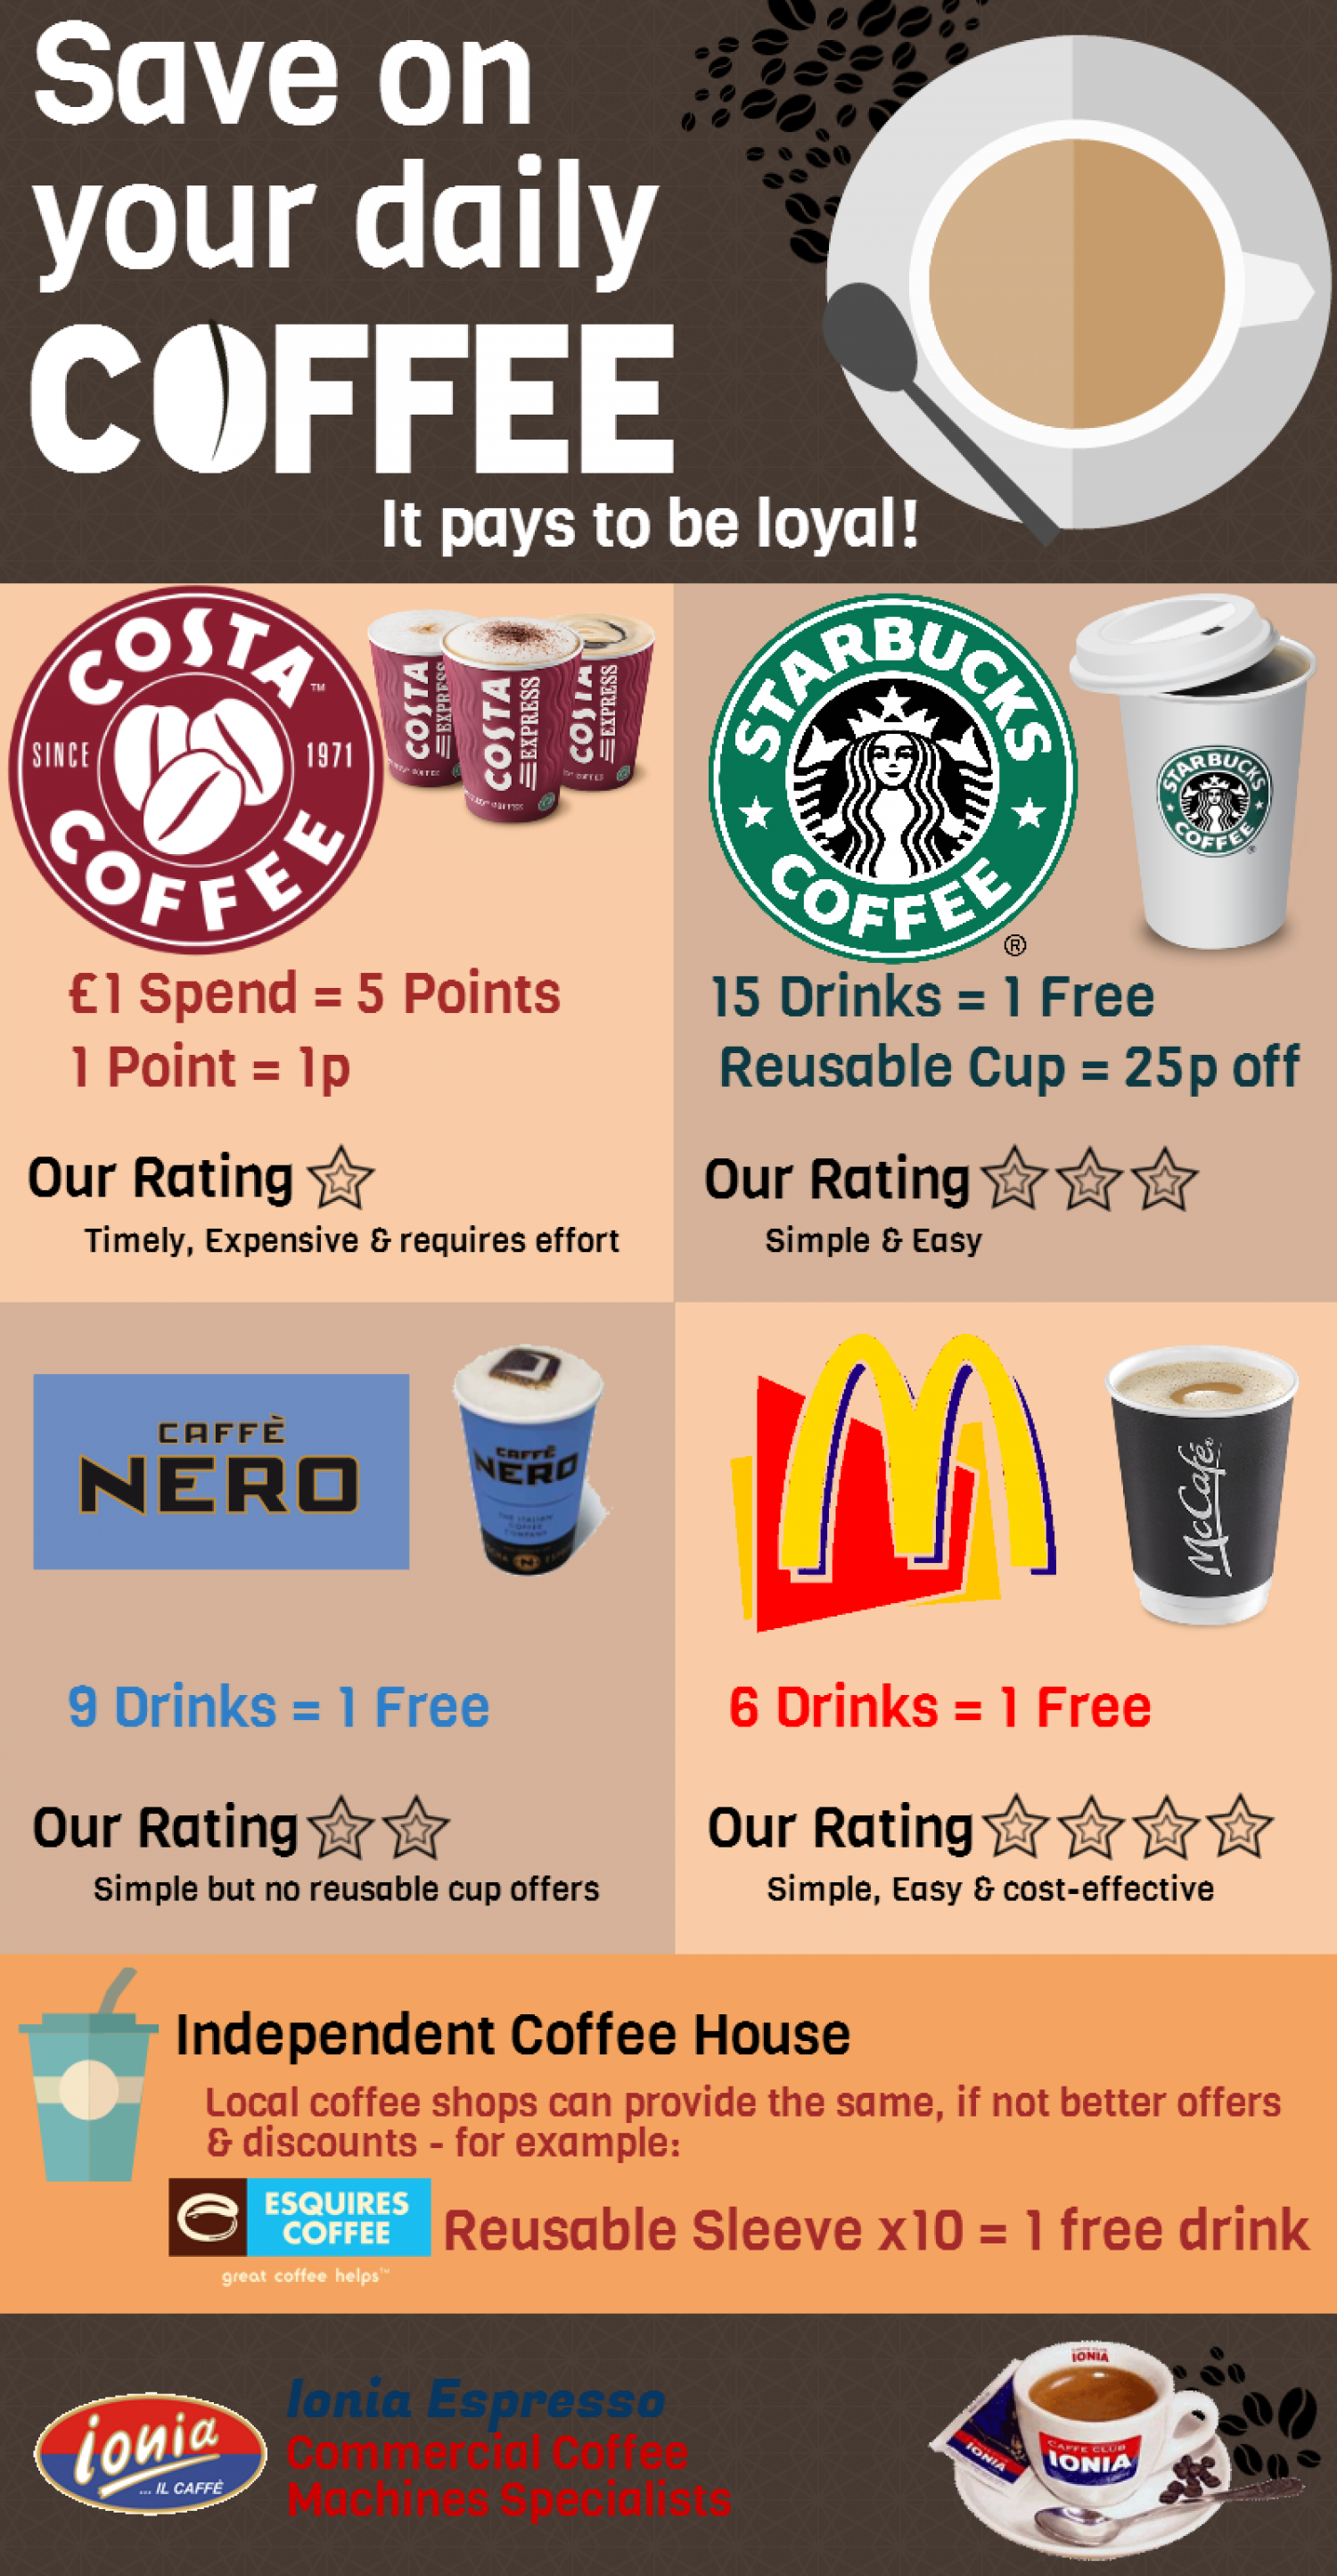 Save on your daily Coffee Infographic